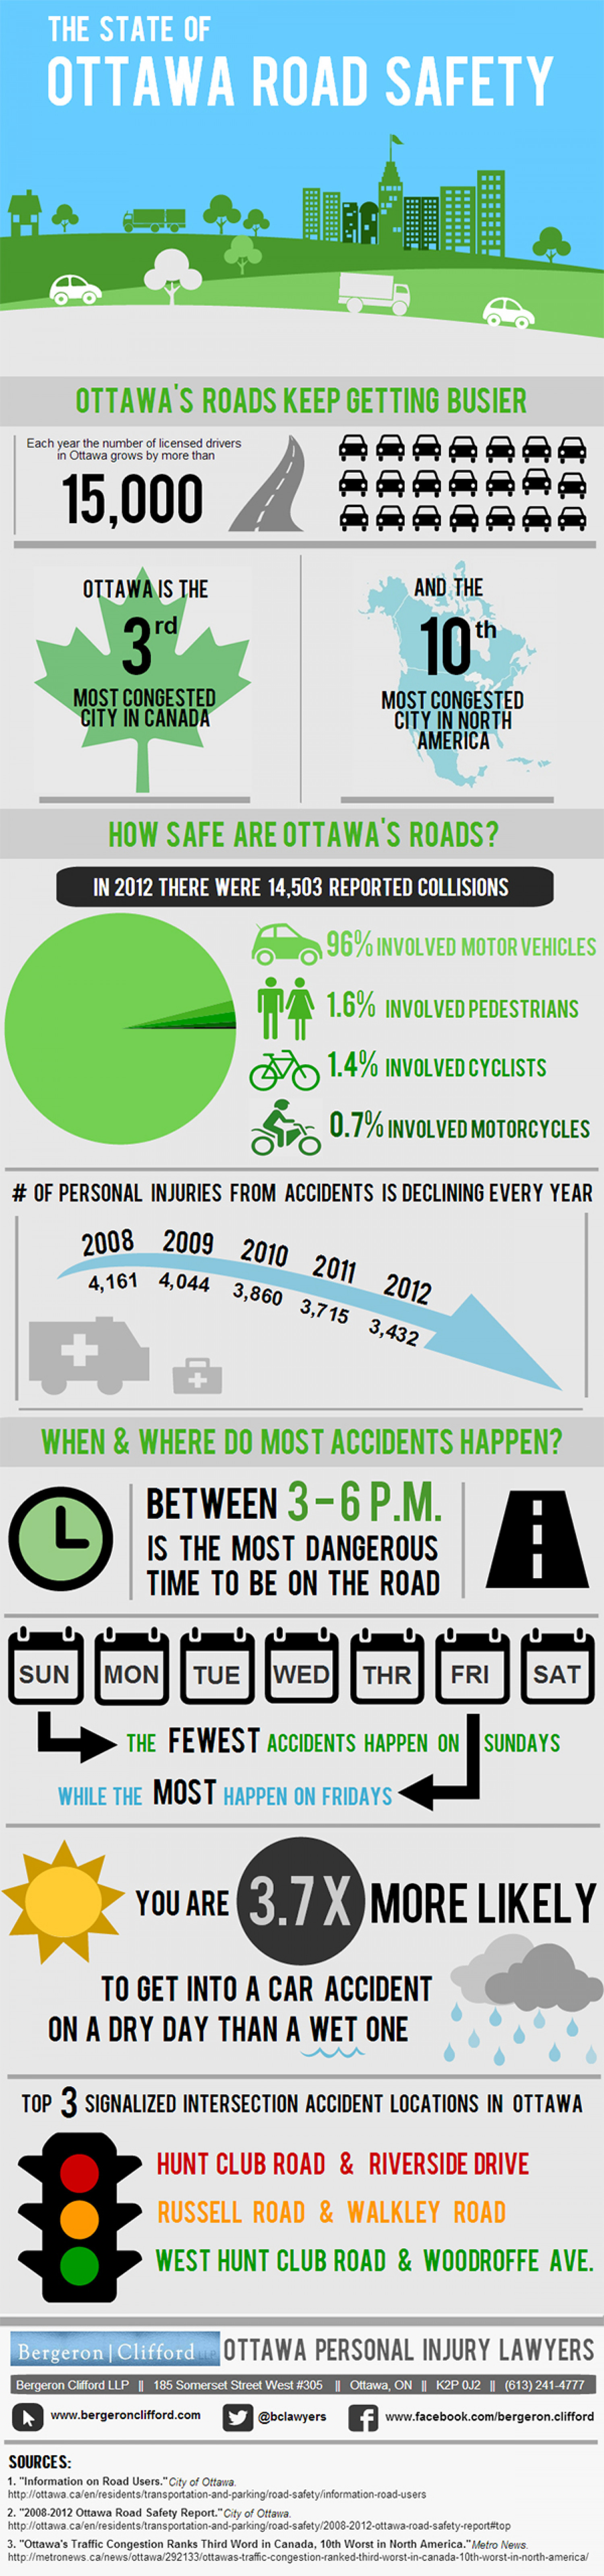 The State of Ottawa Road Safety Infographic